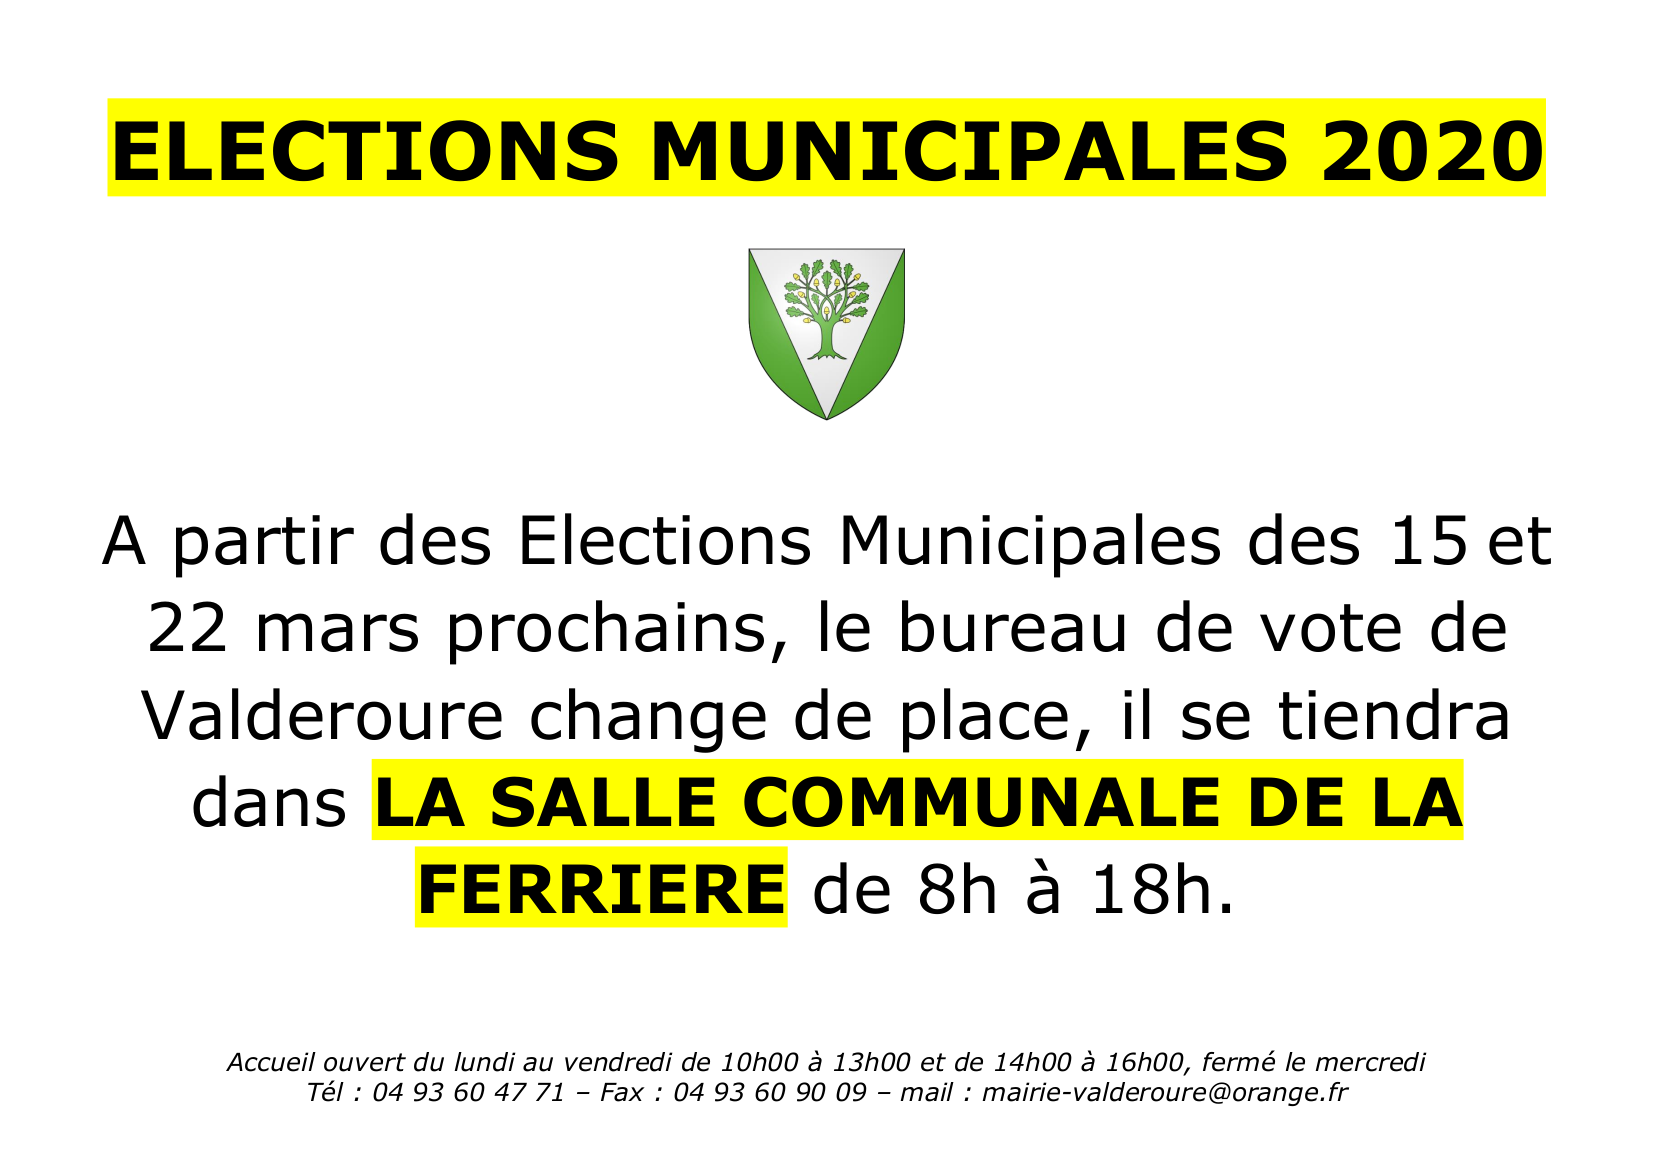 ELECTION MUNICIPALE 2020